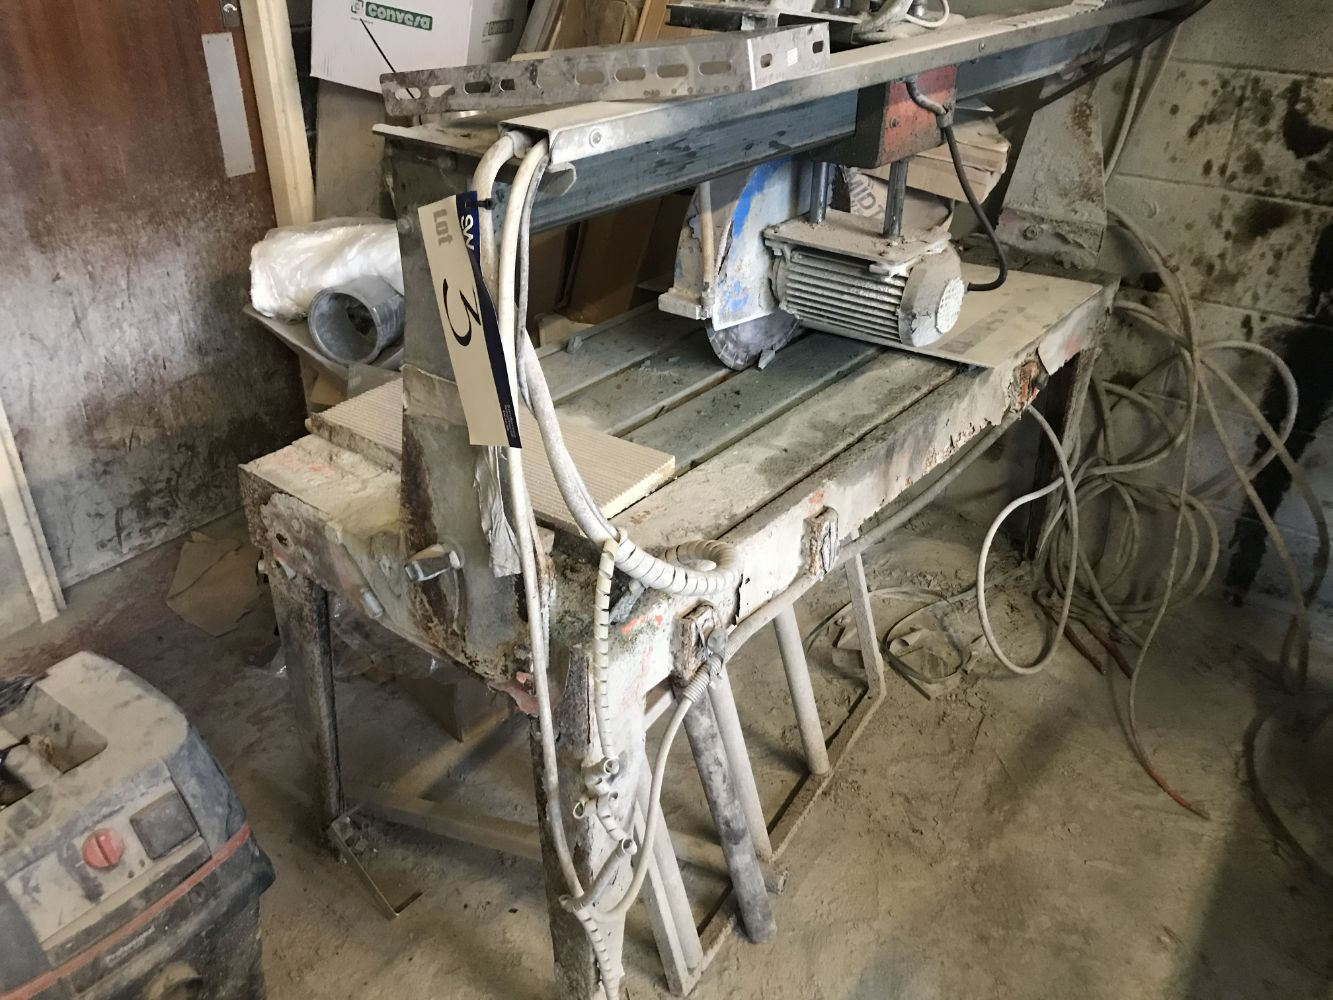 Memorial Stone Masonry Machinery, Workshop Equipment, Residual Stock, Commercial Vehicles and Fork Lift Truck